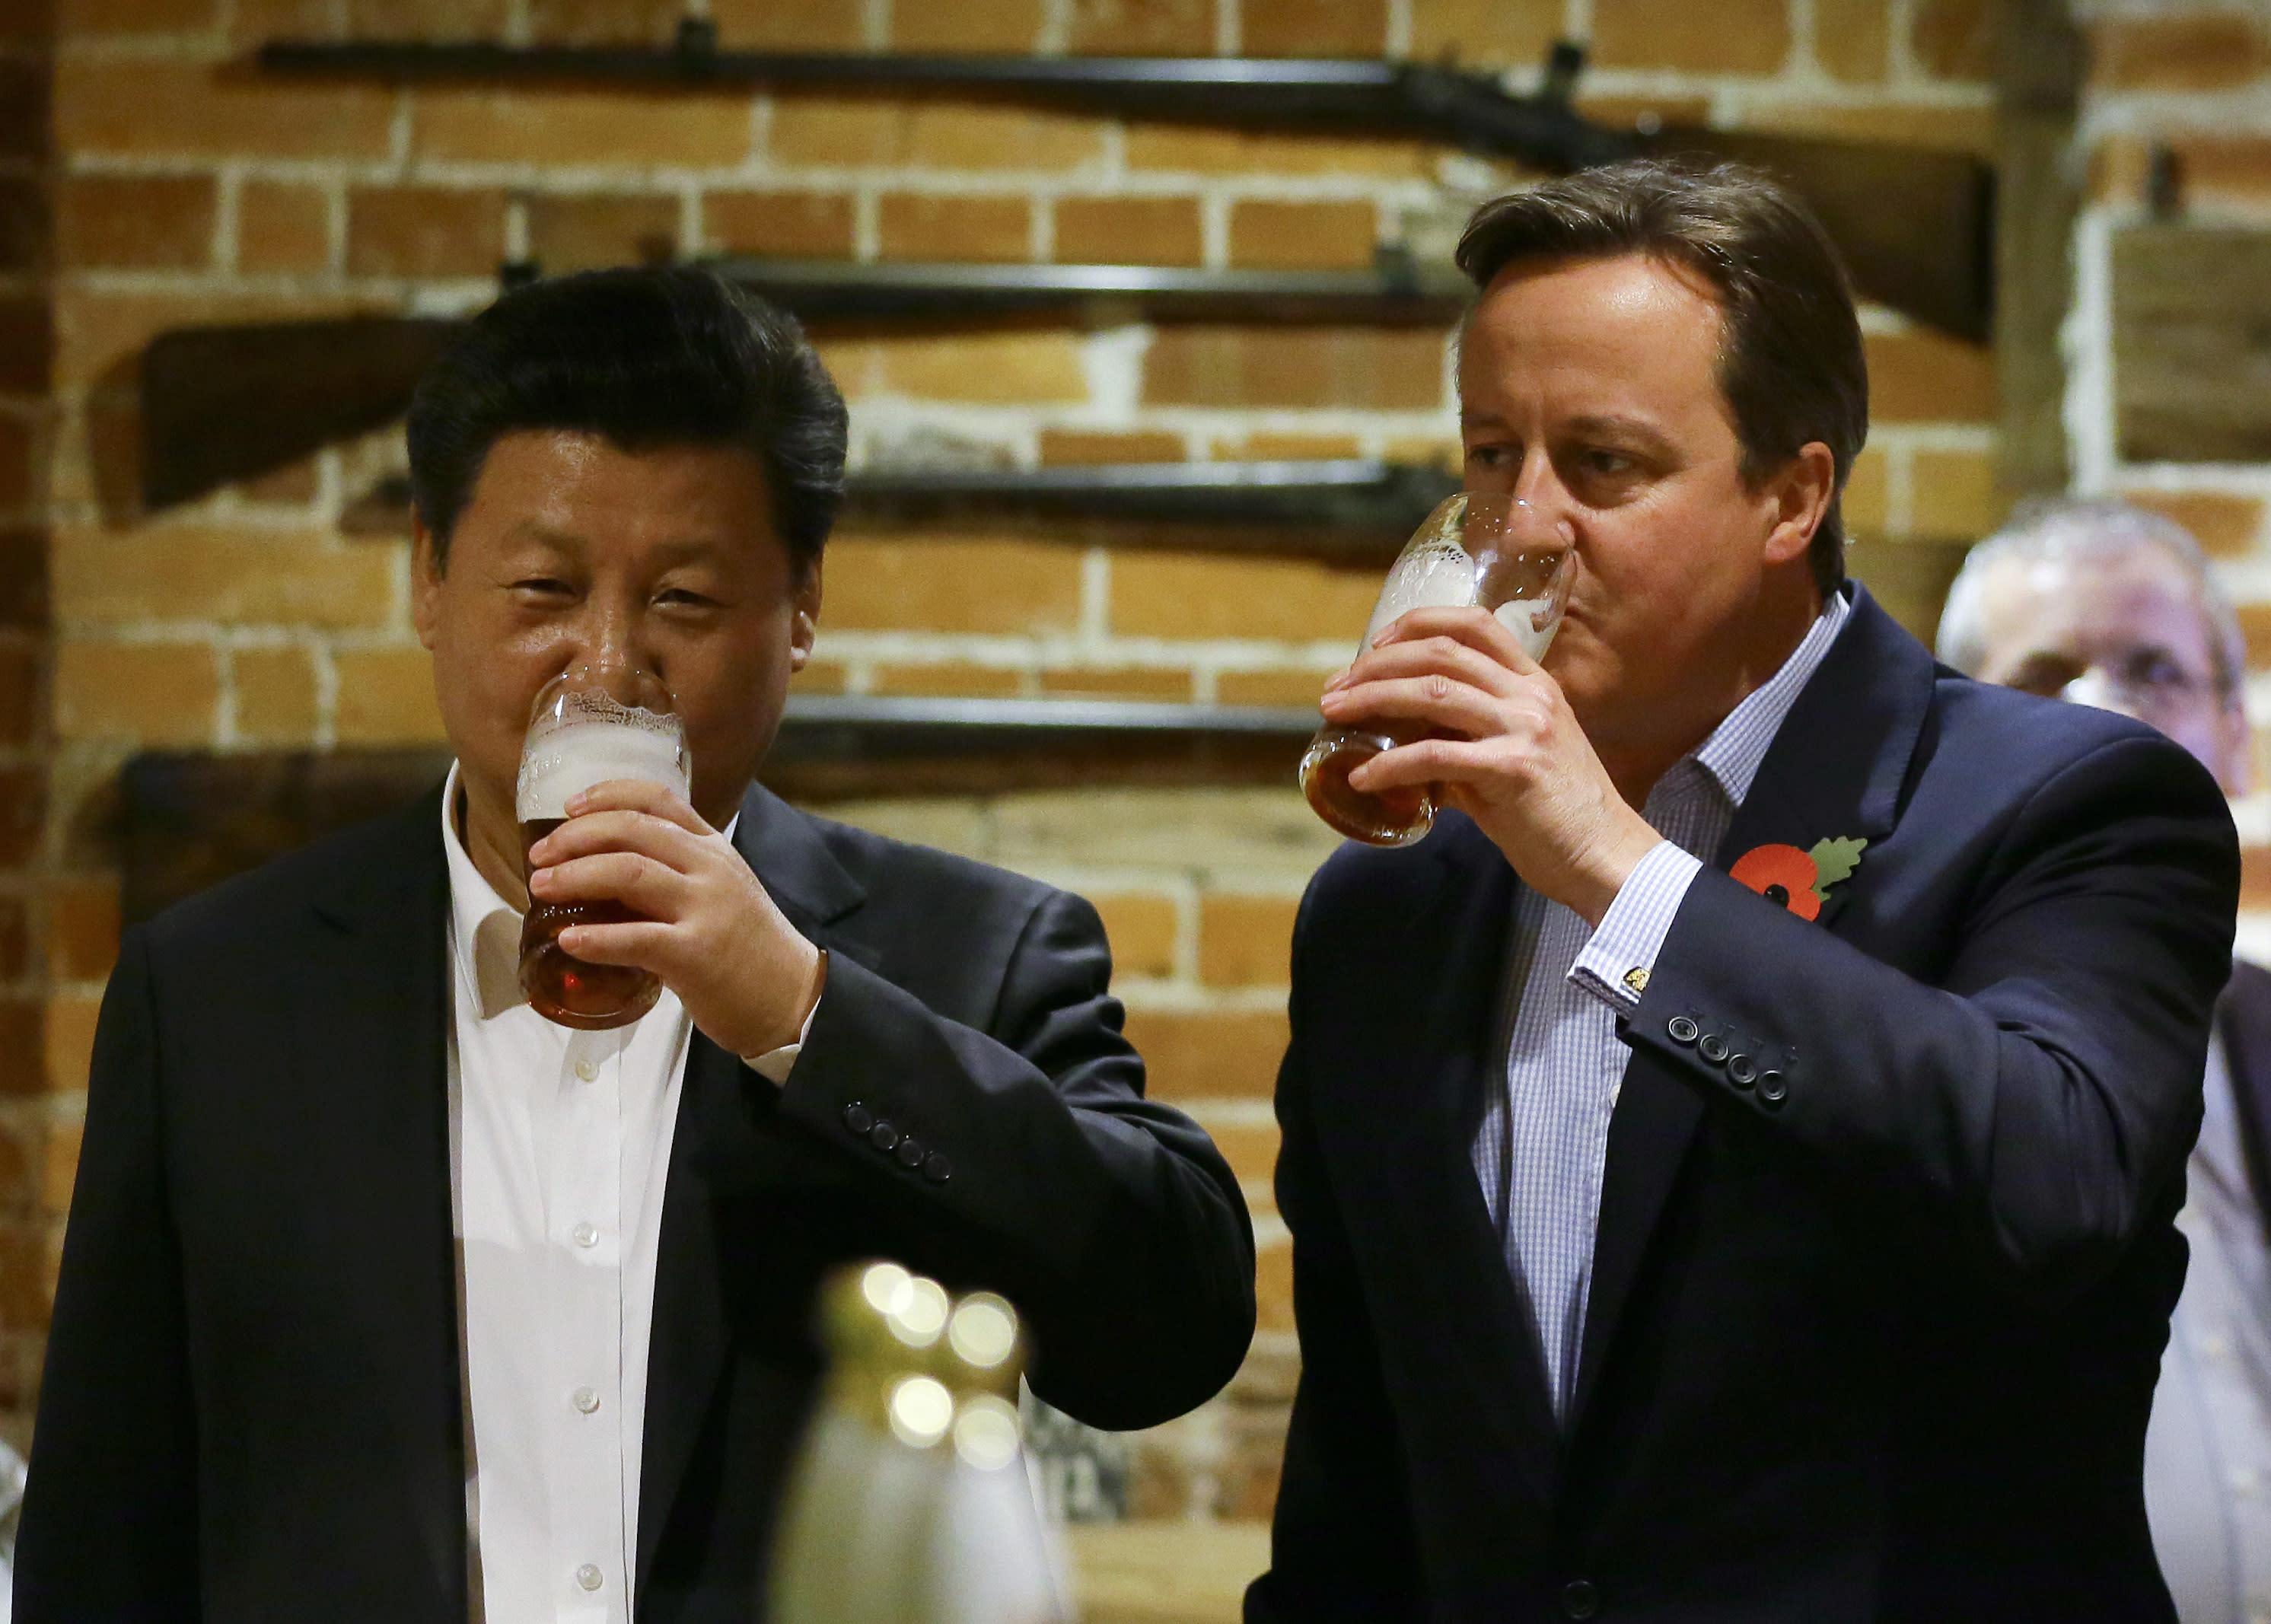 "FILE - In this Thursday, Oct. 22, 2015 file photo, Britain's Prime Minister David Cameron, right, drinks beer with Chinese President Xi Jinping, at a pub in Princess Risborough, near Chequers, England. Only five years ago, former British Prime Minister David Cameron was celebrating a ""golden era"" in U.K.-China relations, bonding with President Xi Jinping over a pint of beer at the pub and signing off trade deals worth billions. Those friendly scenes now seem like a distant memory, with hostile rhetoric ratcheting up this week over Beijing's new national security law on Hong Kong. China has threatened ""consequences"" after Britain offered refuge to millions in the former colony. (AP Photo/Kirsty Wigglesworth, file)"